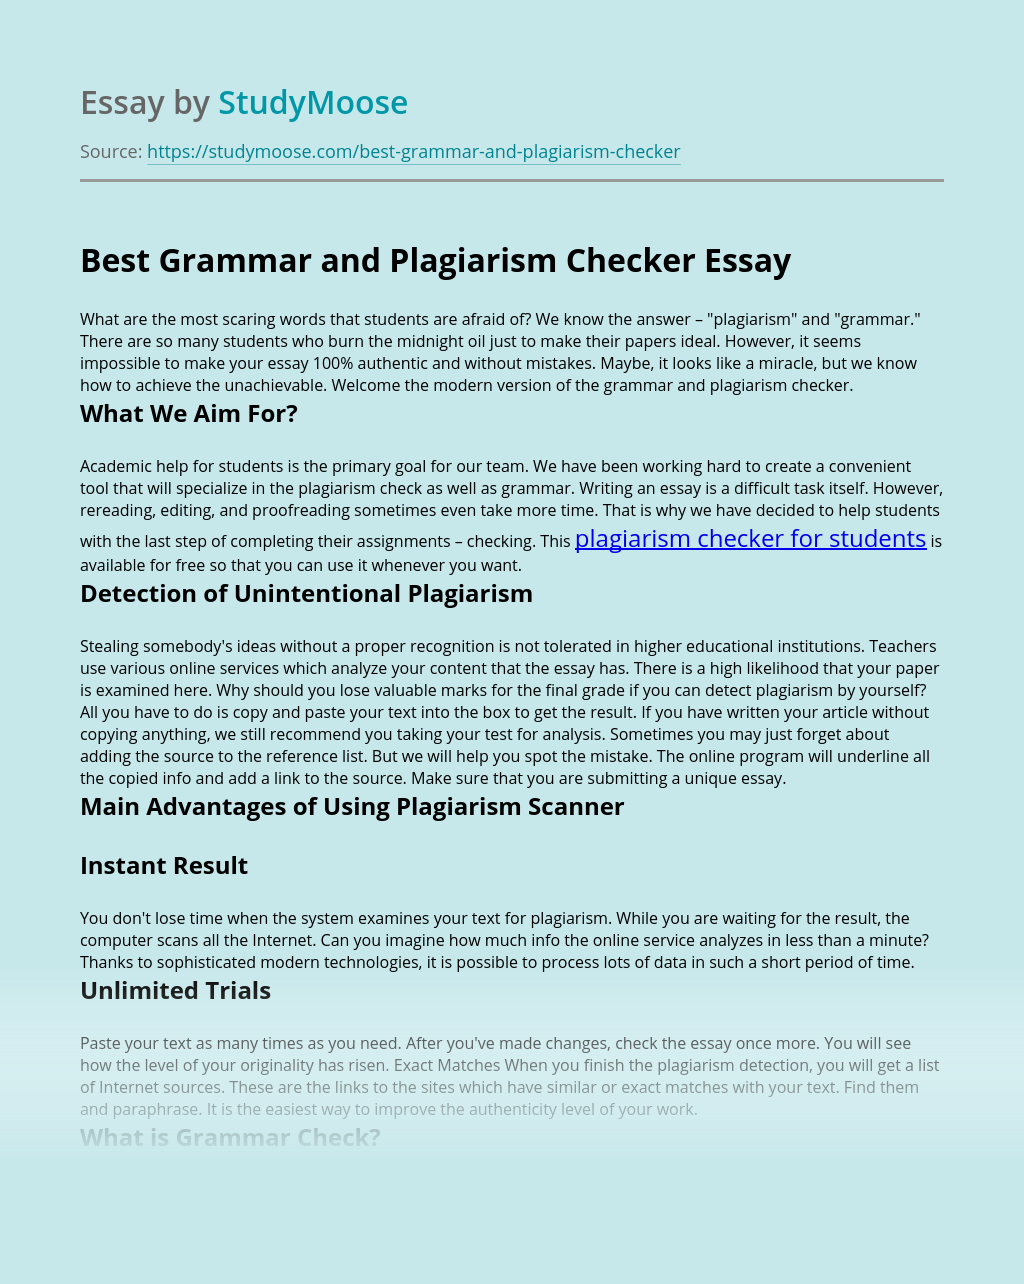 Best Grammar and Plagiarism Checker